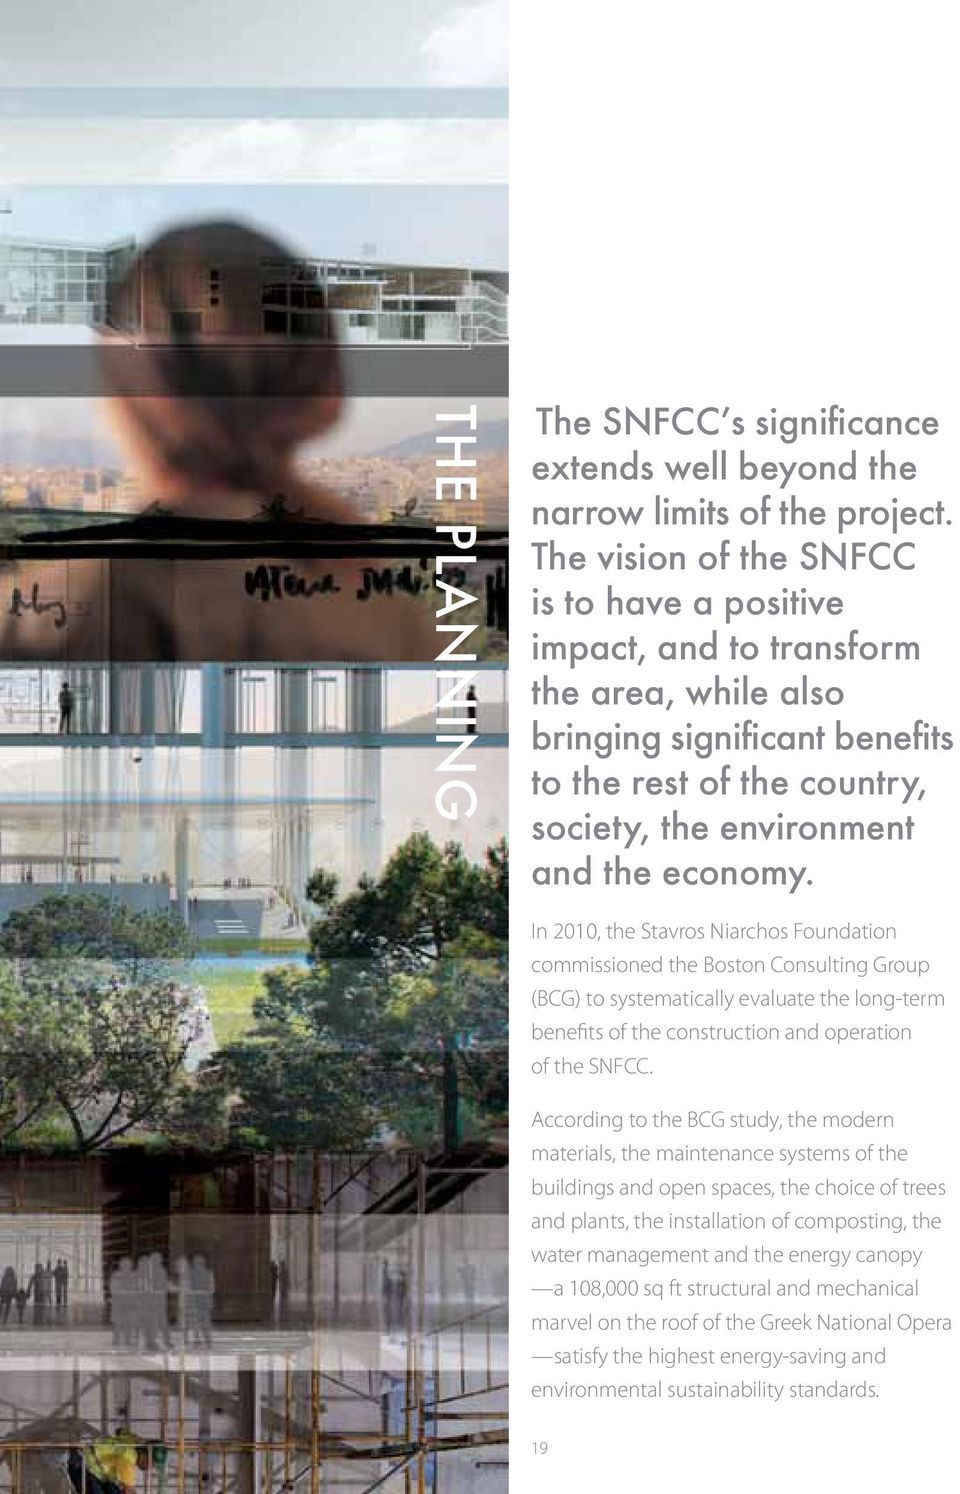 In 2010, the Stavros Niarchos Foundation commissioned the Boston Consulting Group (BCG) to systematically evaluate the long-term benefits of the construction and operation of the SNFCC.